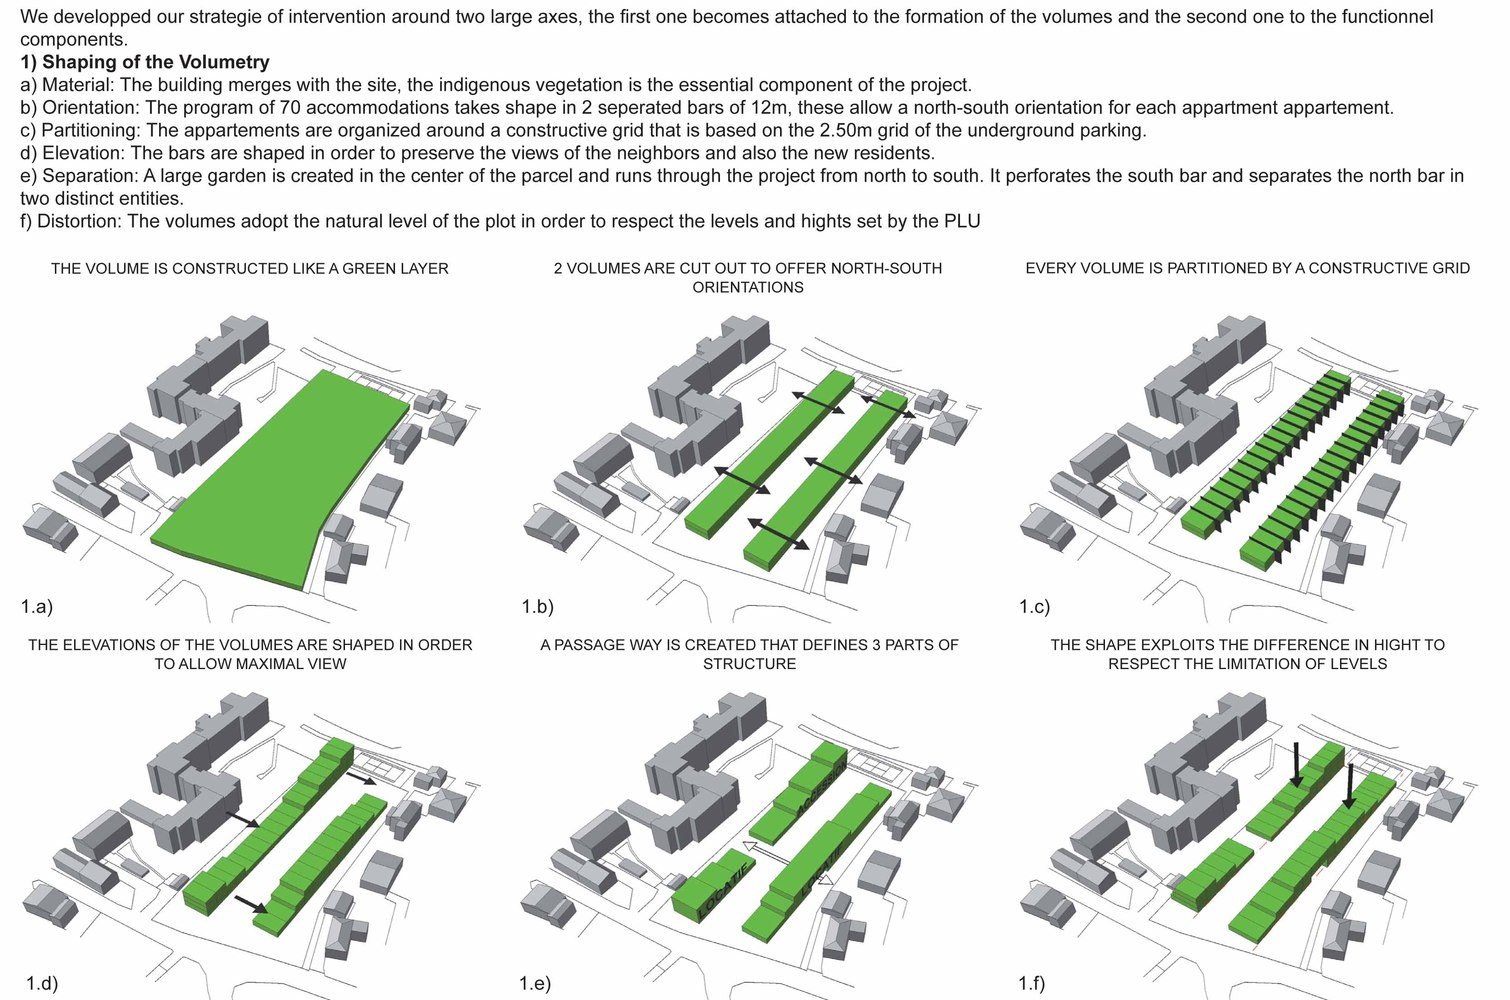 Affordable green housing off duncan lewis scape architecturediagrams 03